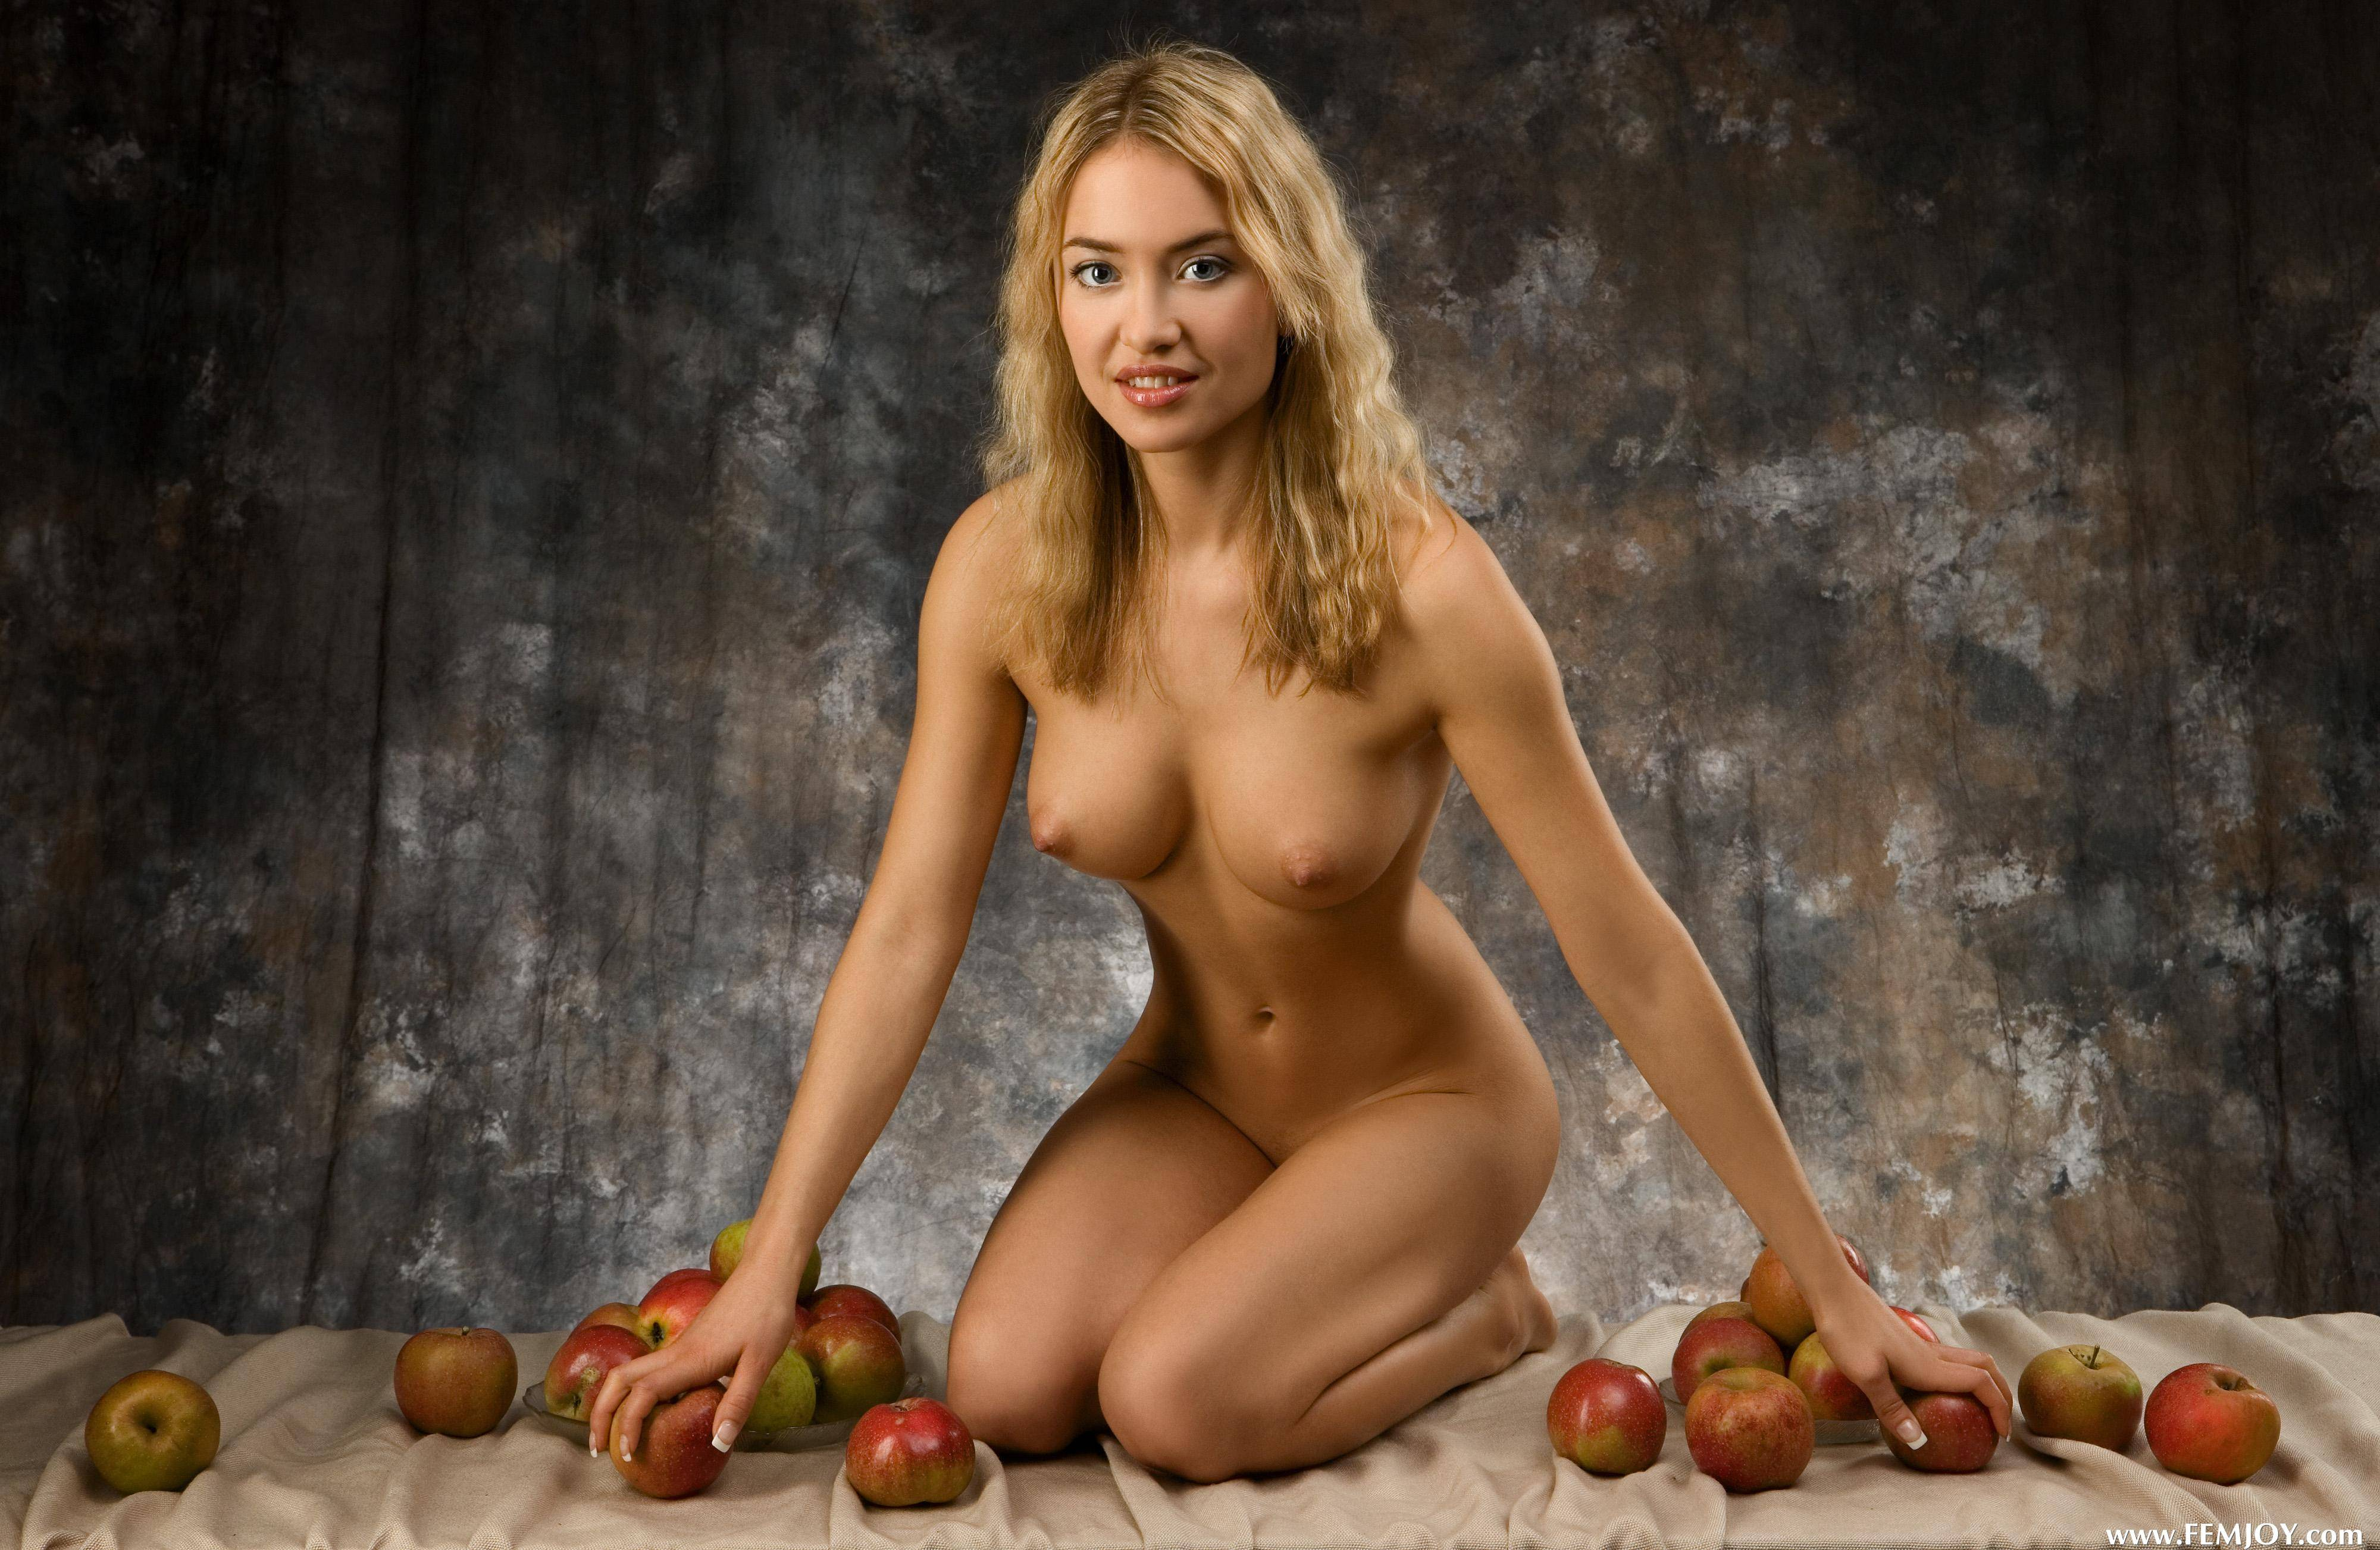 Nude model young fruit #6